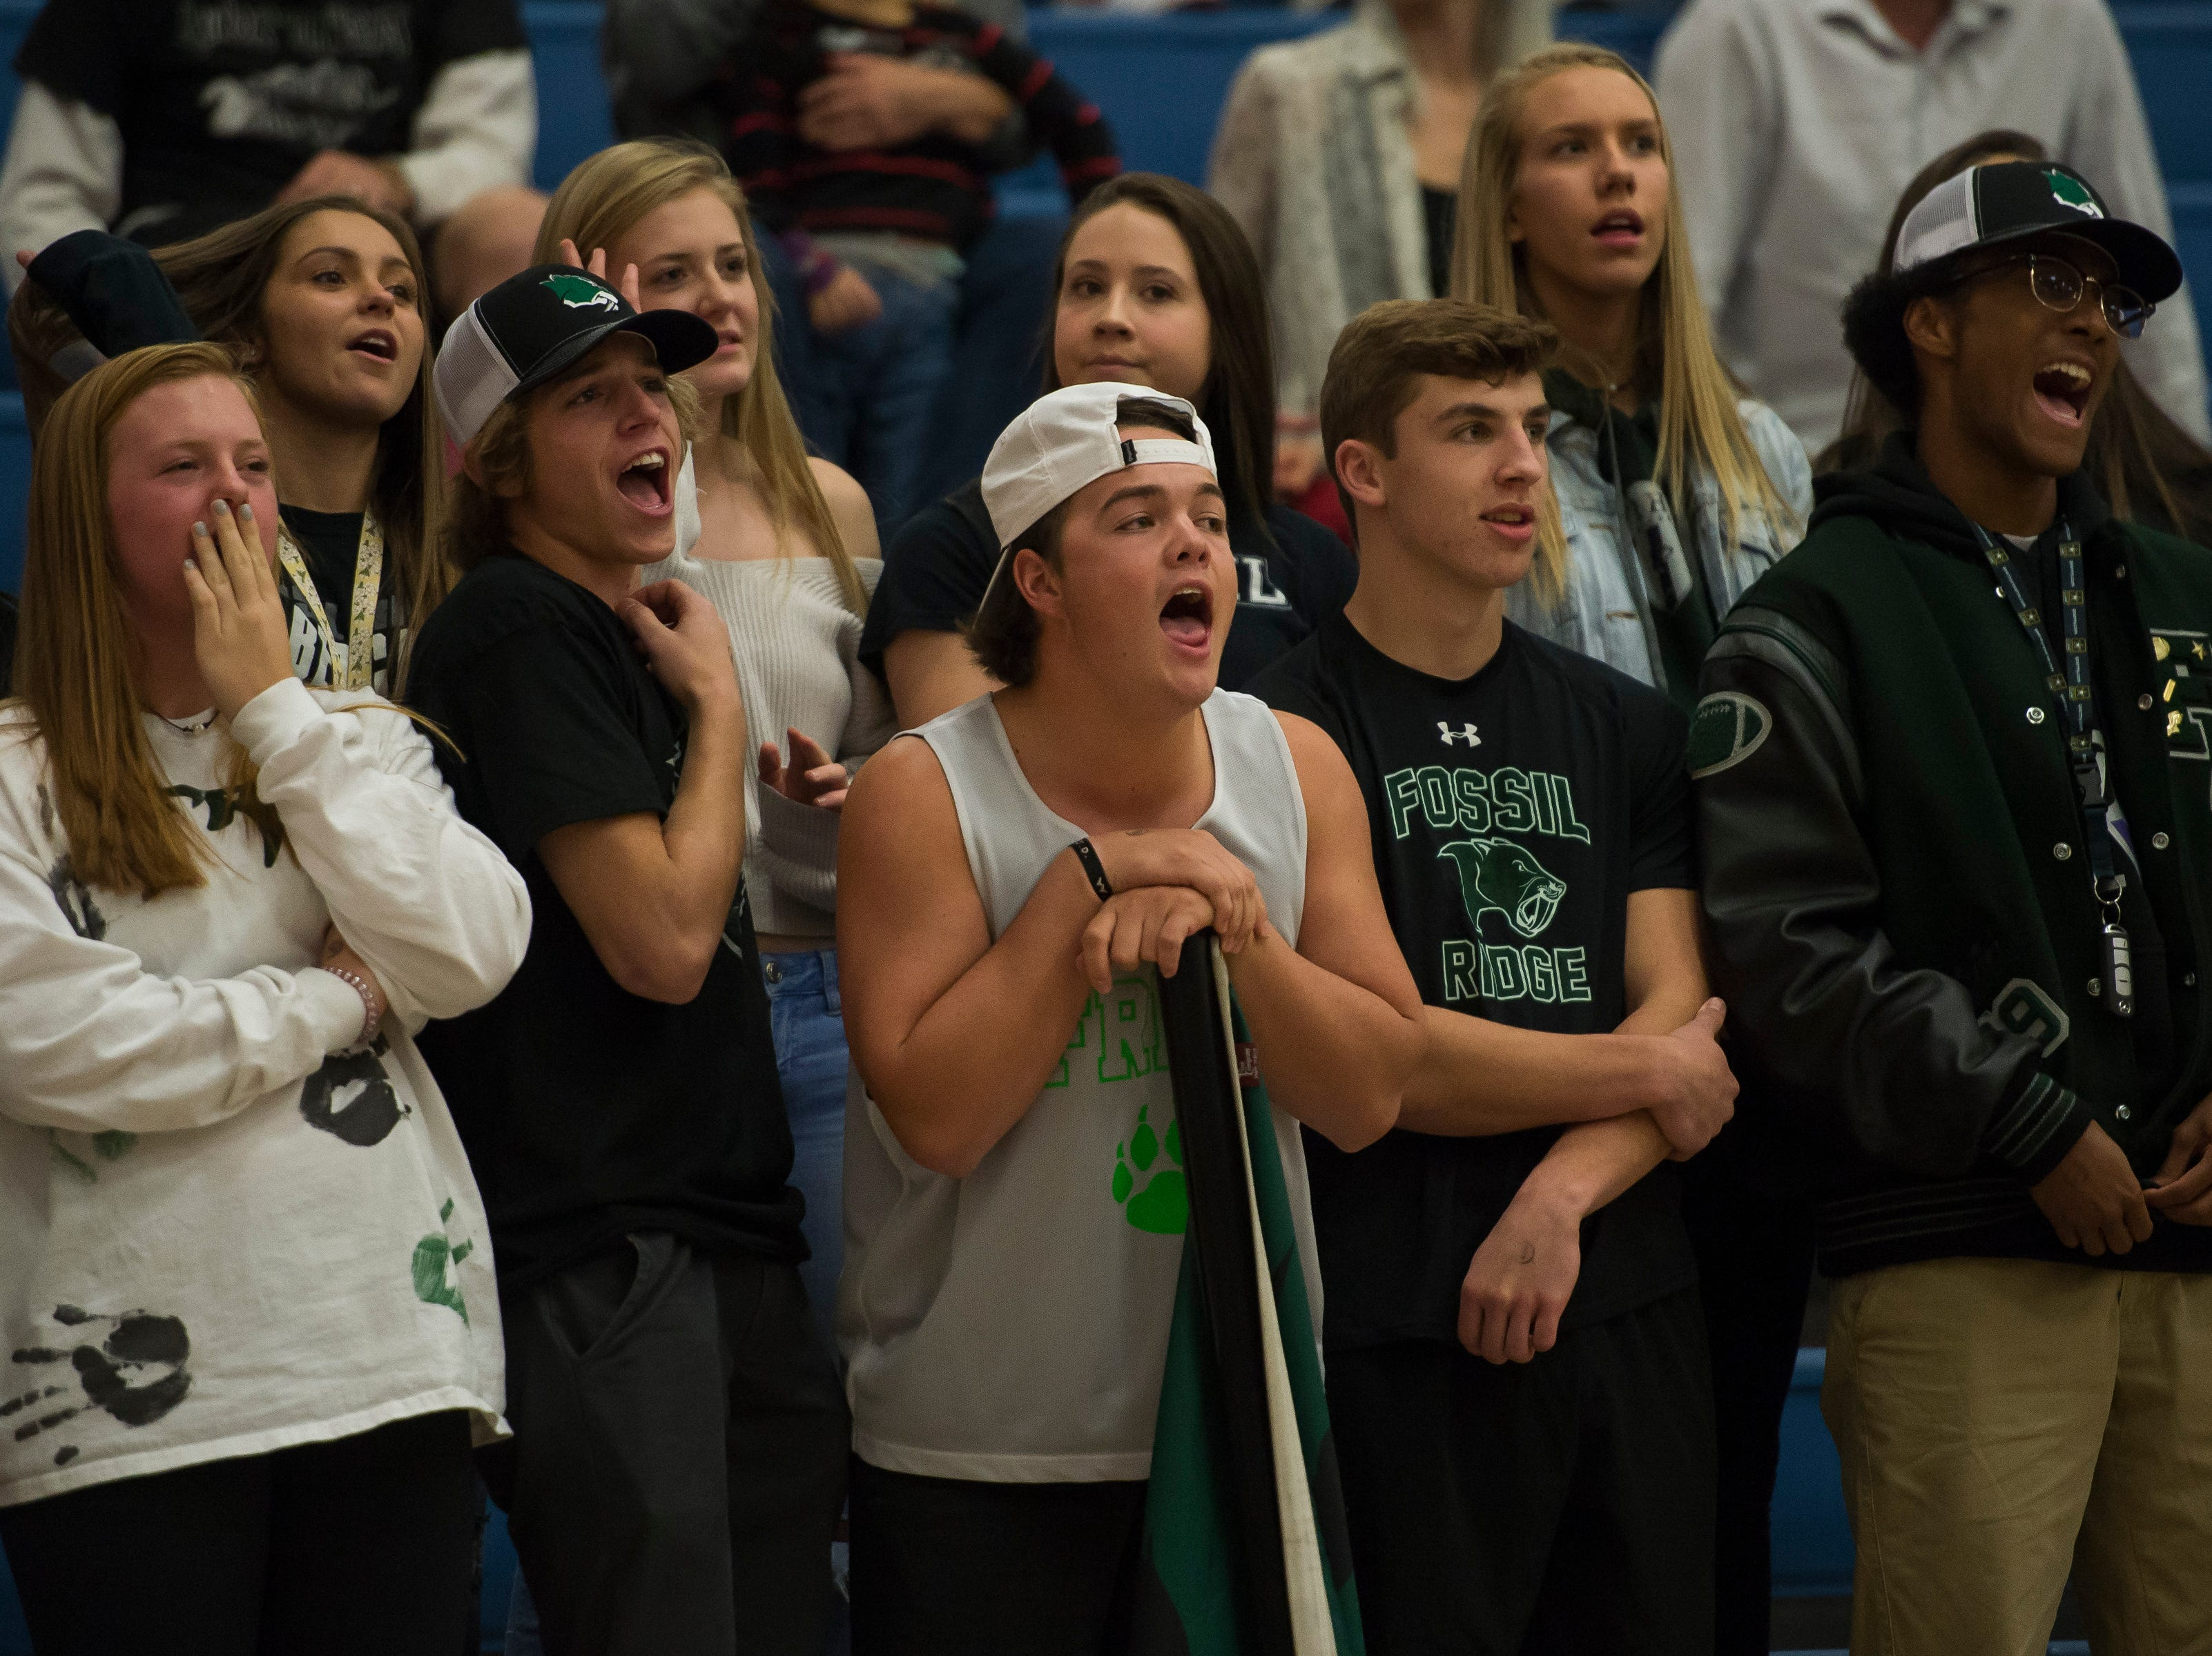 Fossil Ridge High School students attempt to distract a free throw by a  Poudre High School player on Tuesday, Dec. 4, 2018, at Poudre High School on Fort Collins, Colo.